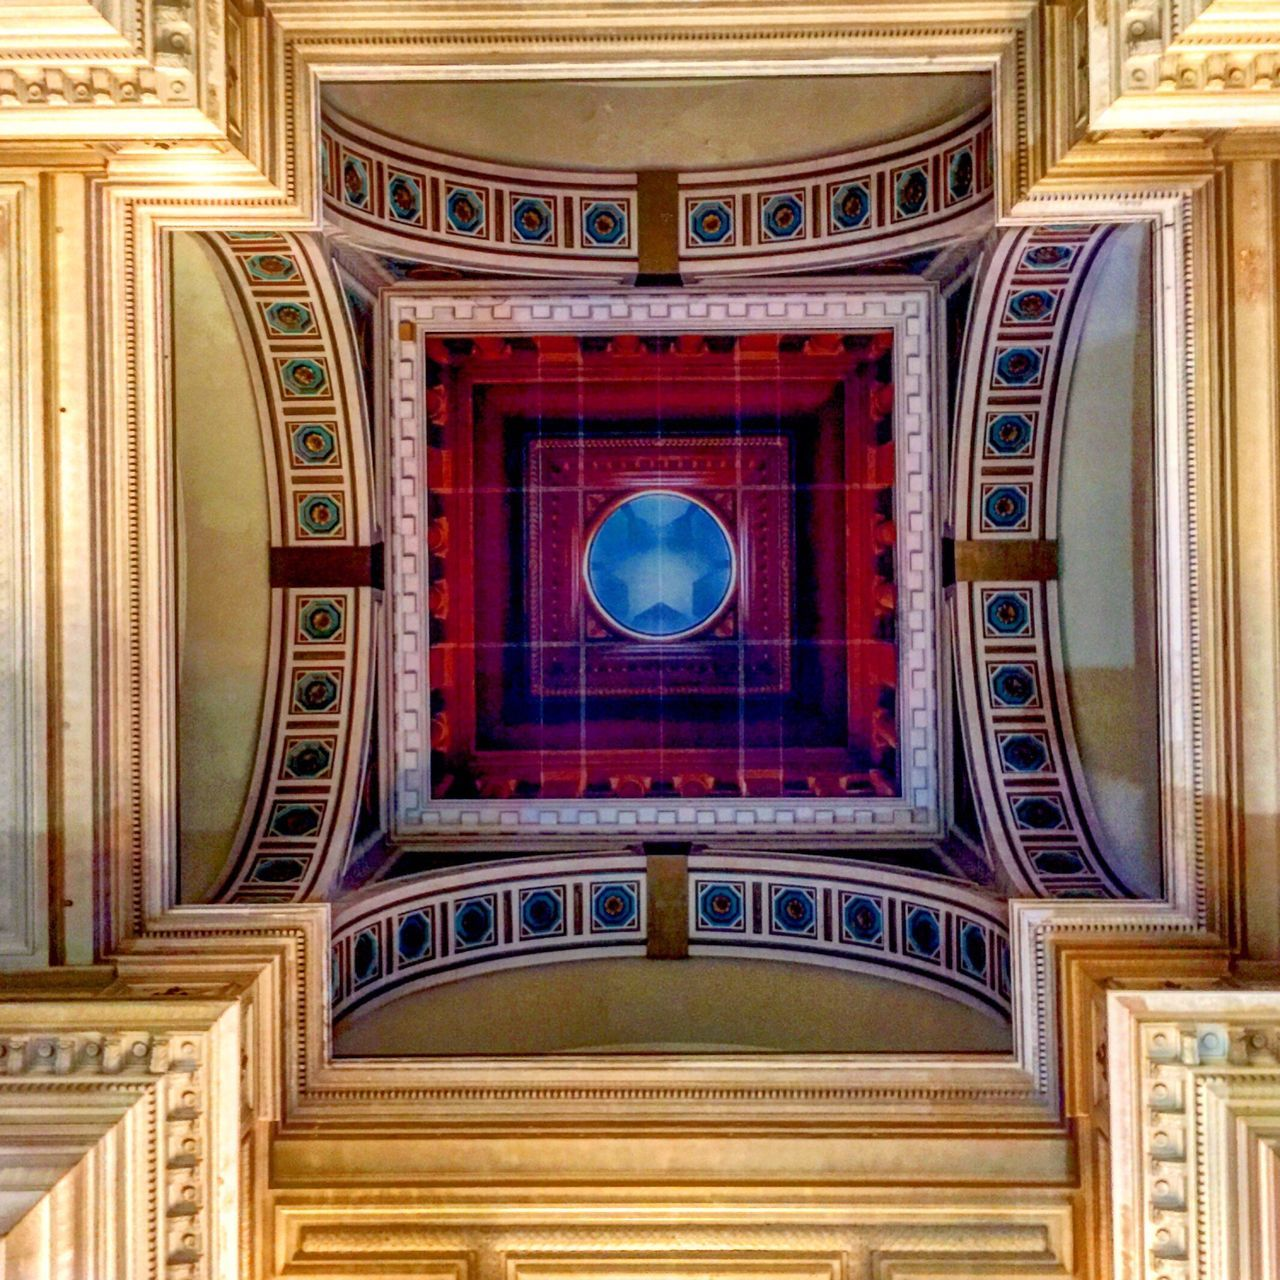 Brussels courthouse ceiling History Architecture No People Built Structure Outdoors Day Justitiepaleis Brussels Courthouse